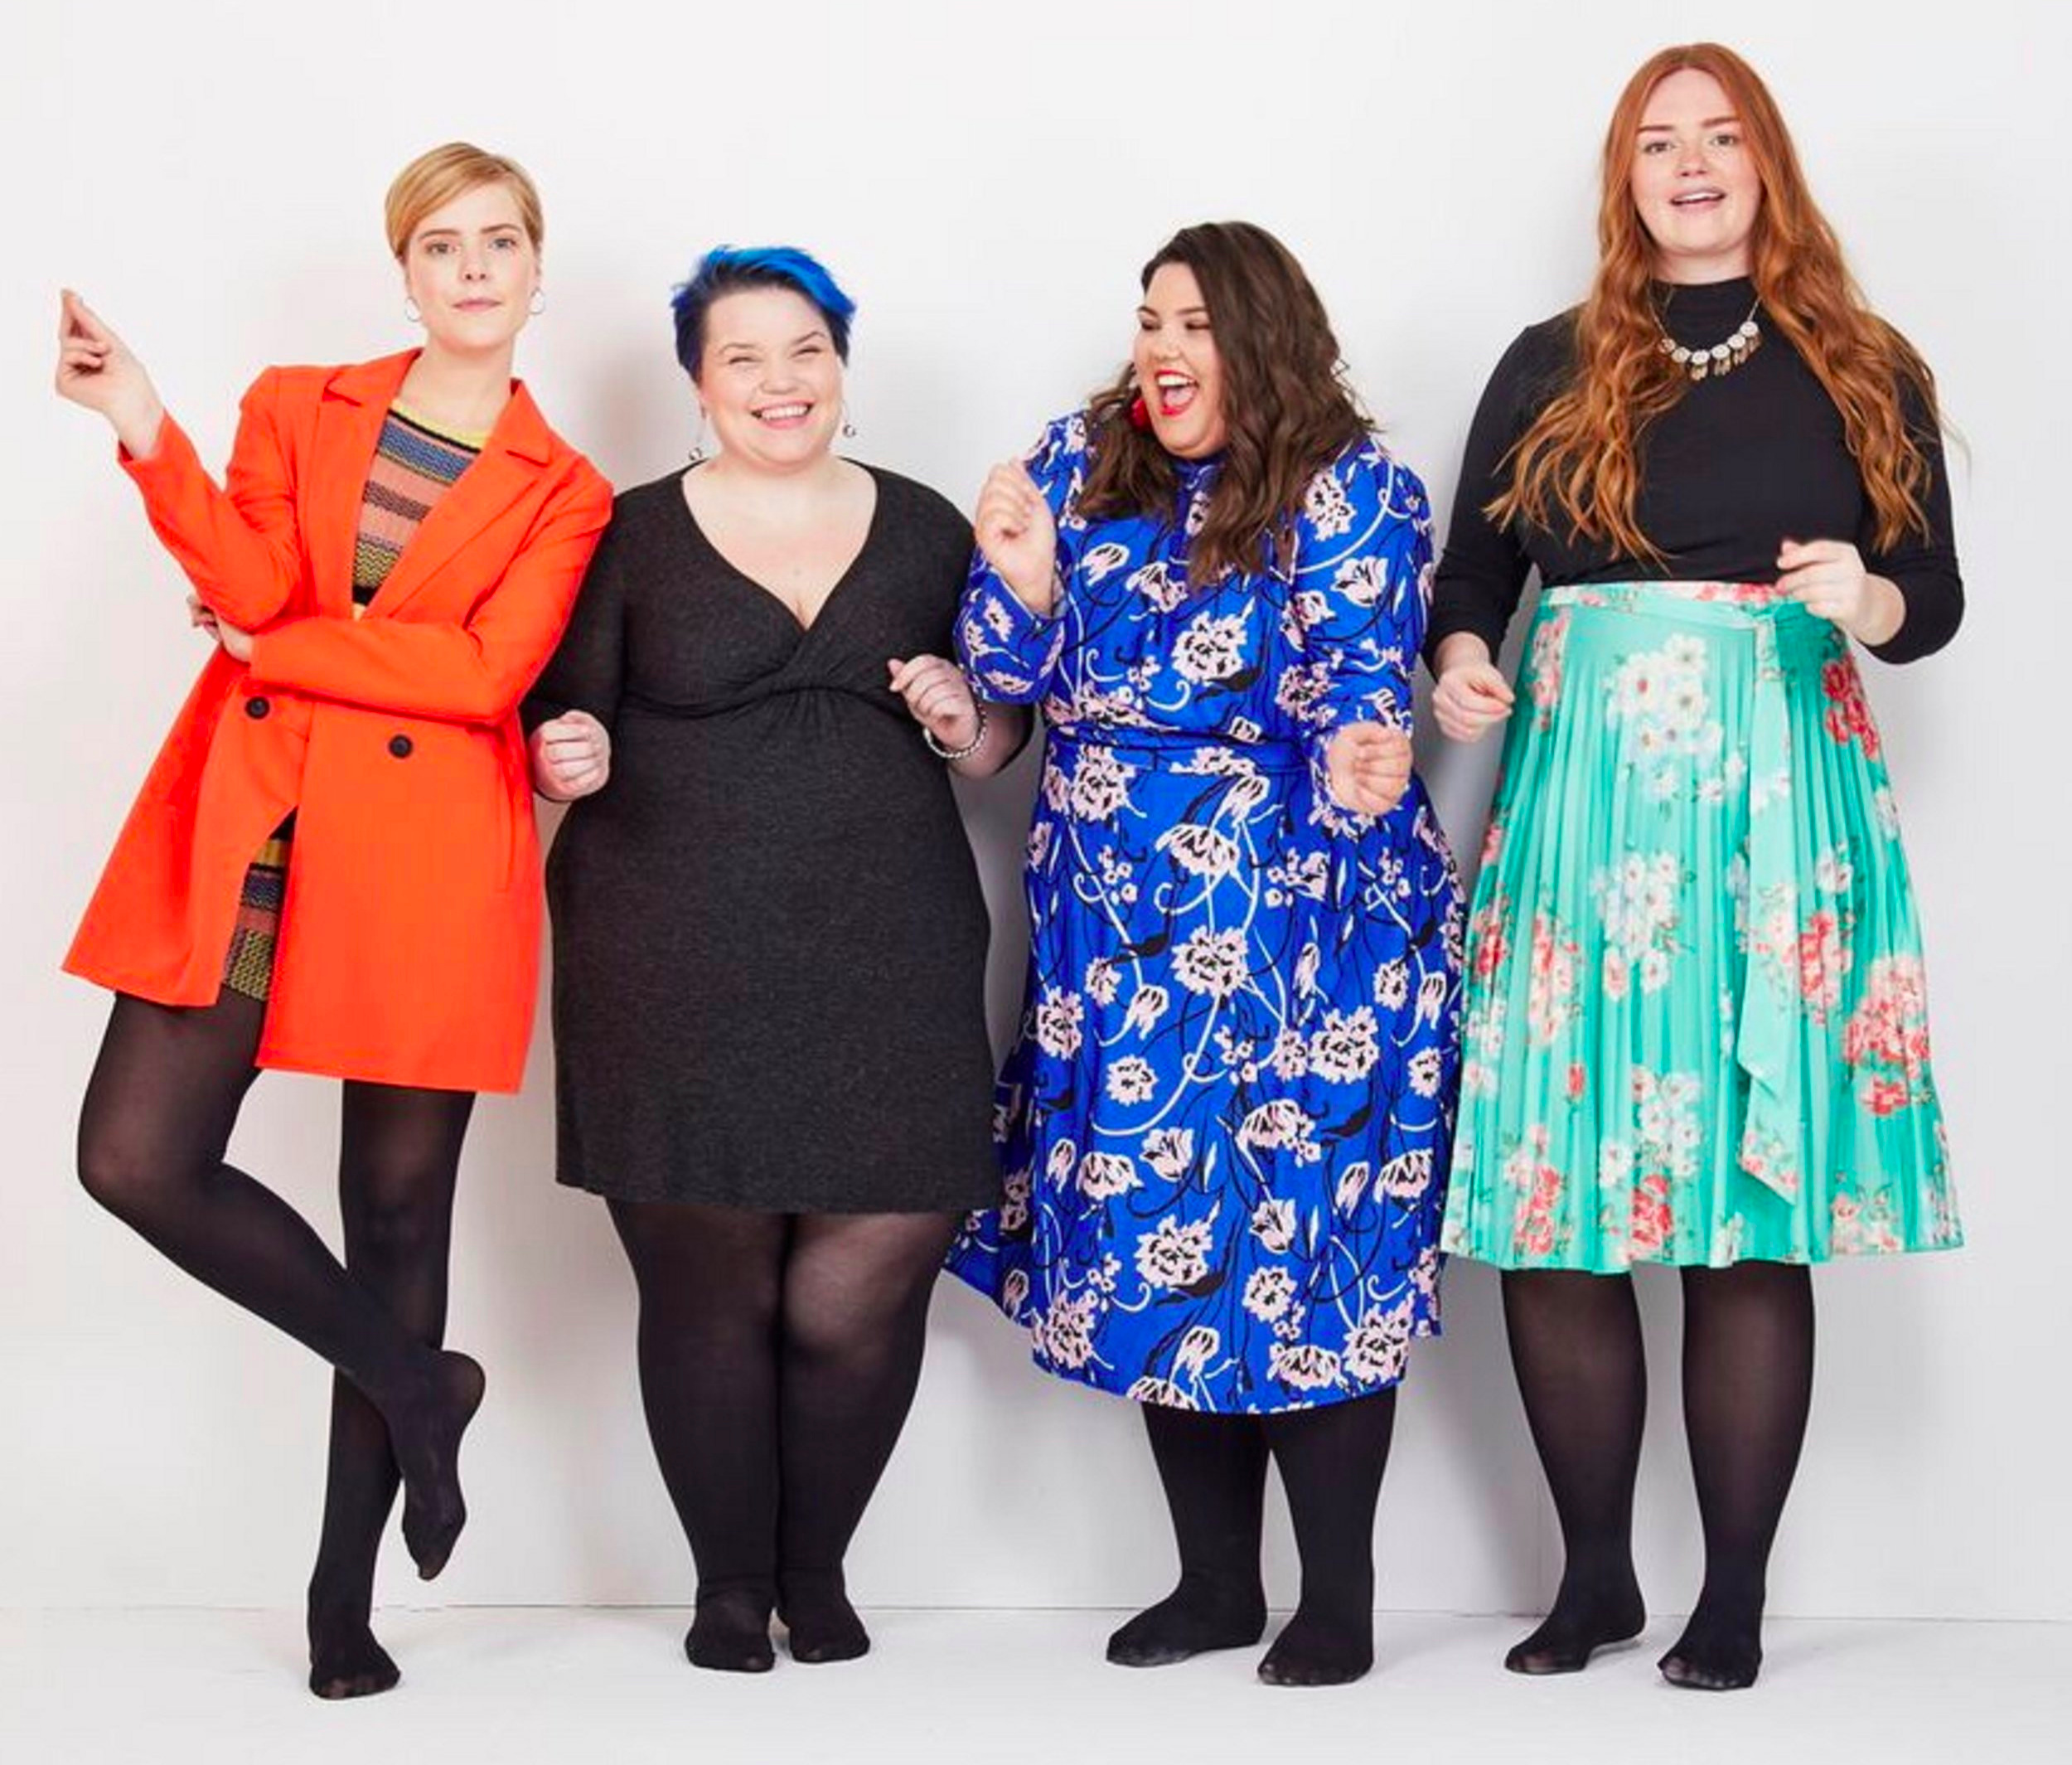 Brie Read (second from left), the founder of Snag tights